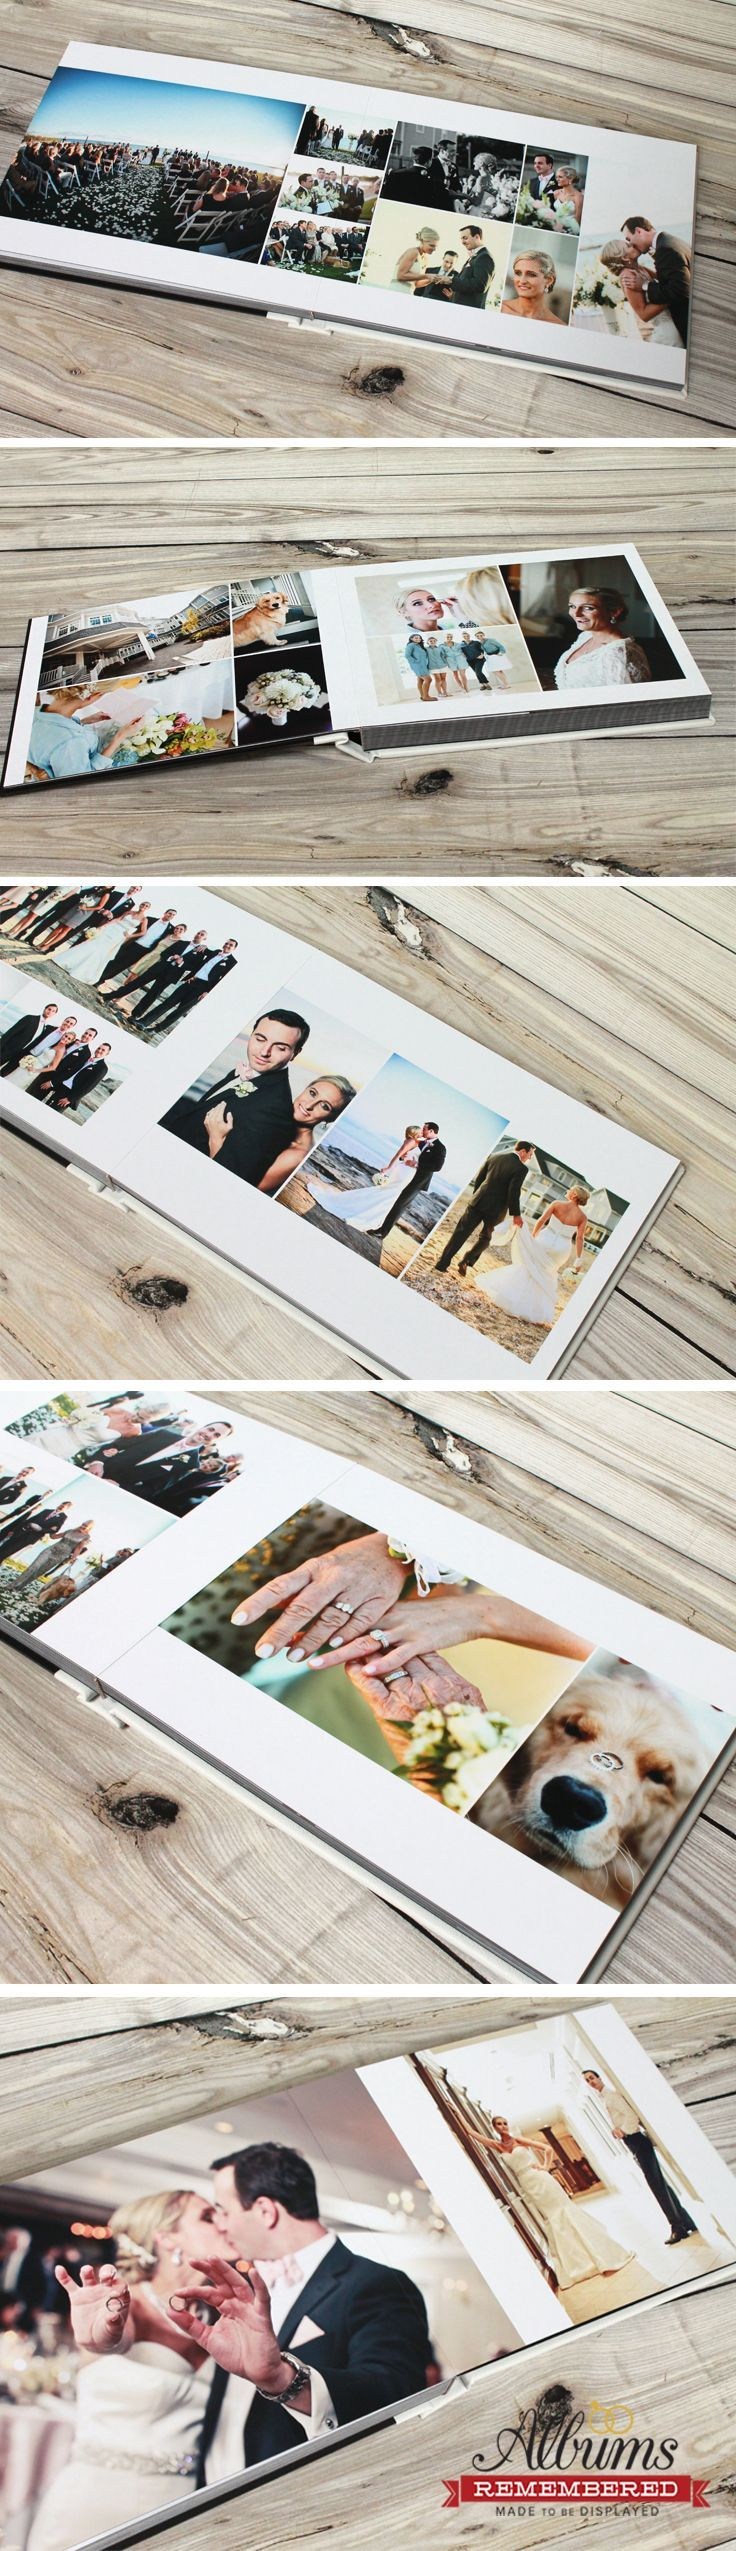 At Albums Remembered We Offer Free Design Service With Unlimited Revisions Along With Each Album Purchasin Photo Album Design Wedding Album Design Album Design